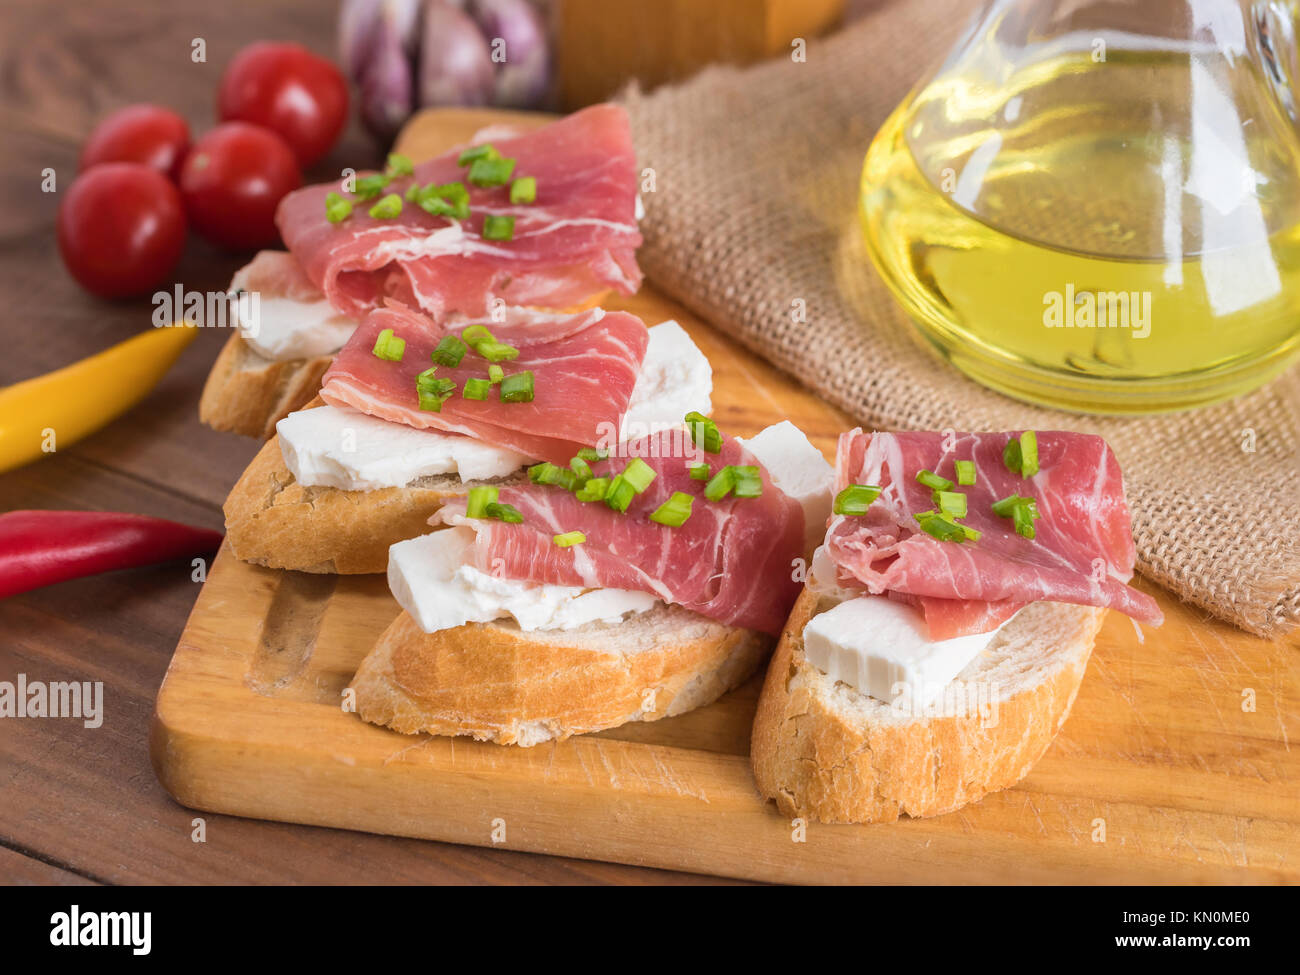 Bruschetta Italian Food Antipasti Stock Photos ...